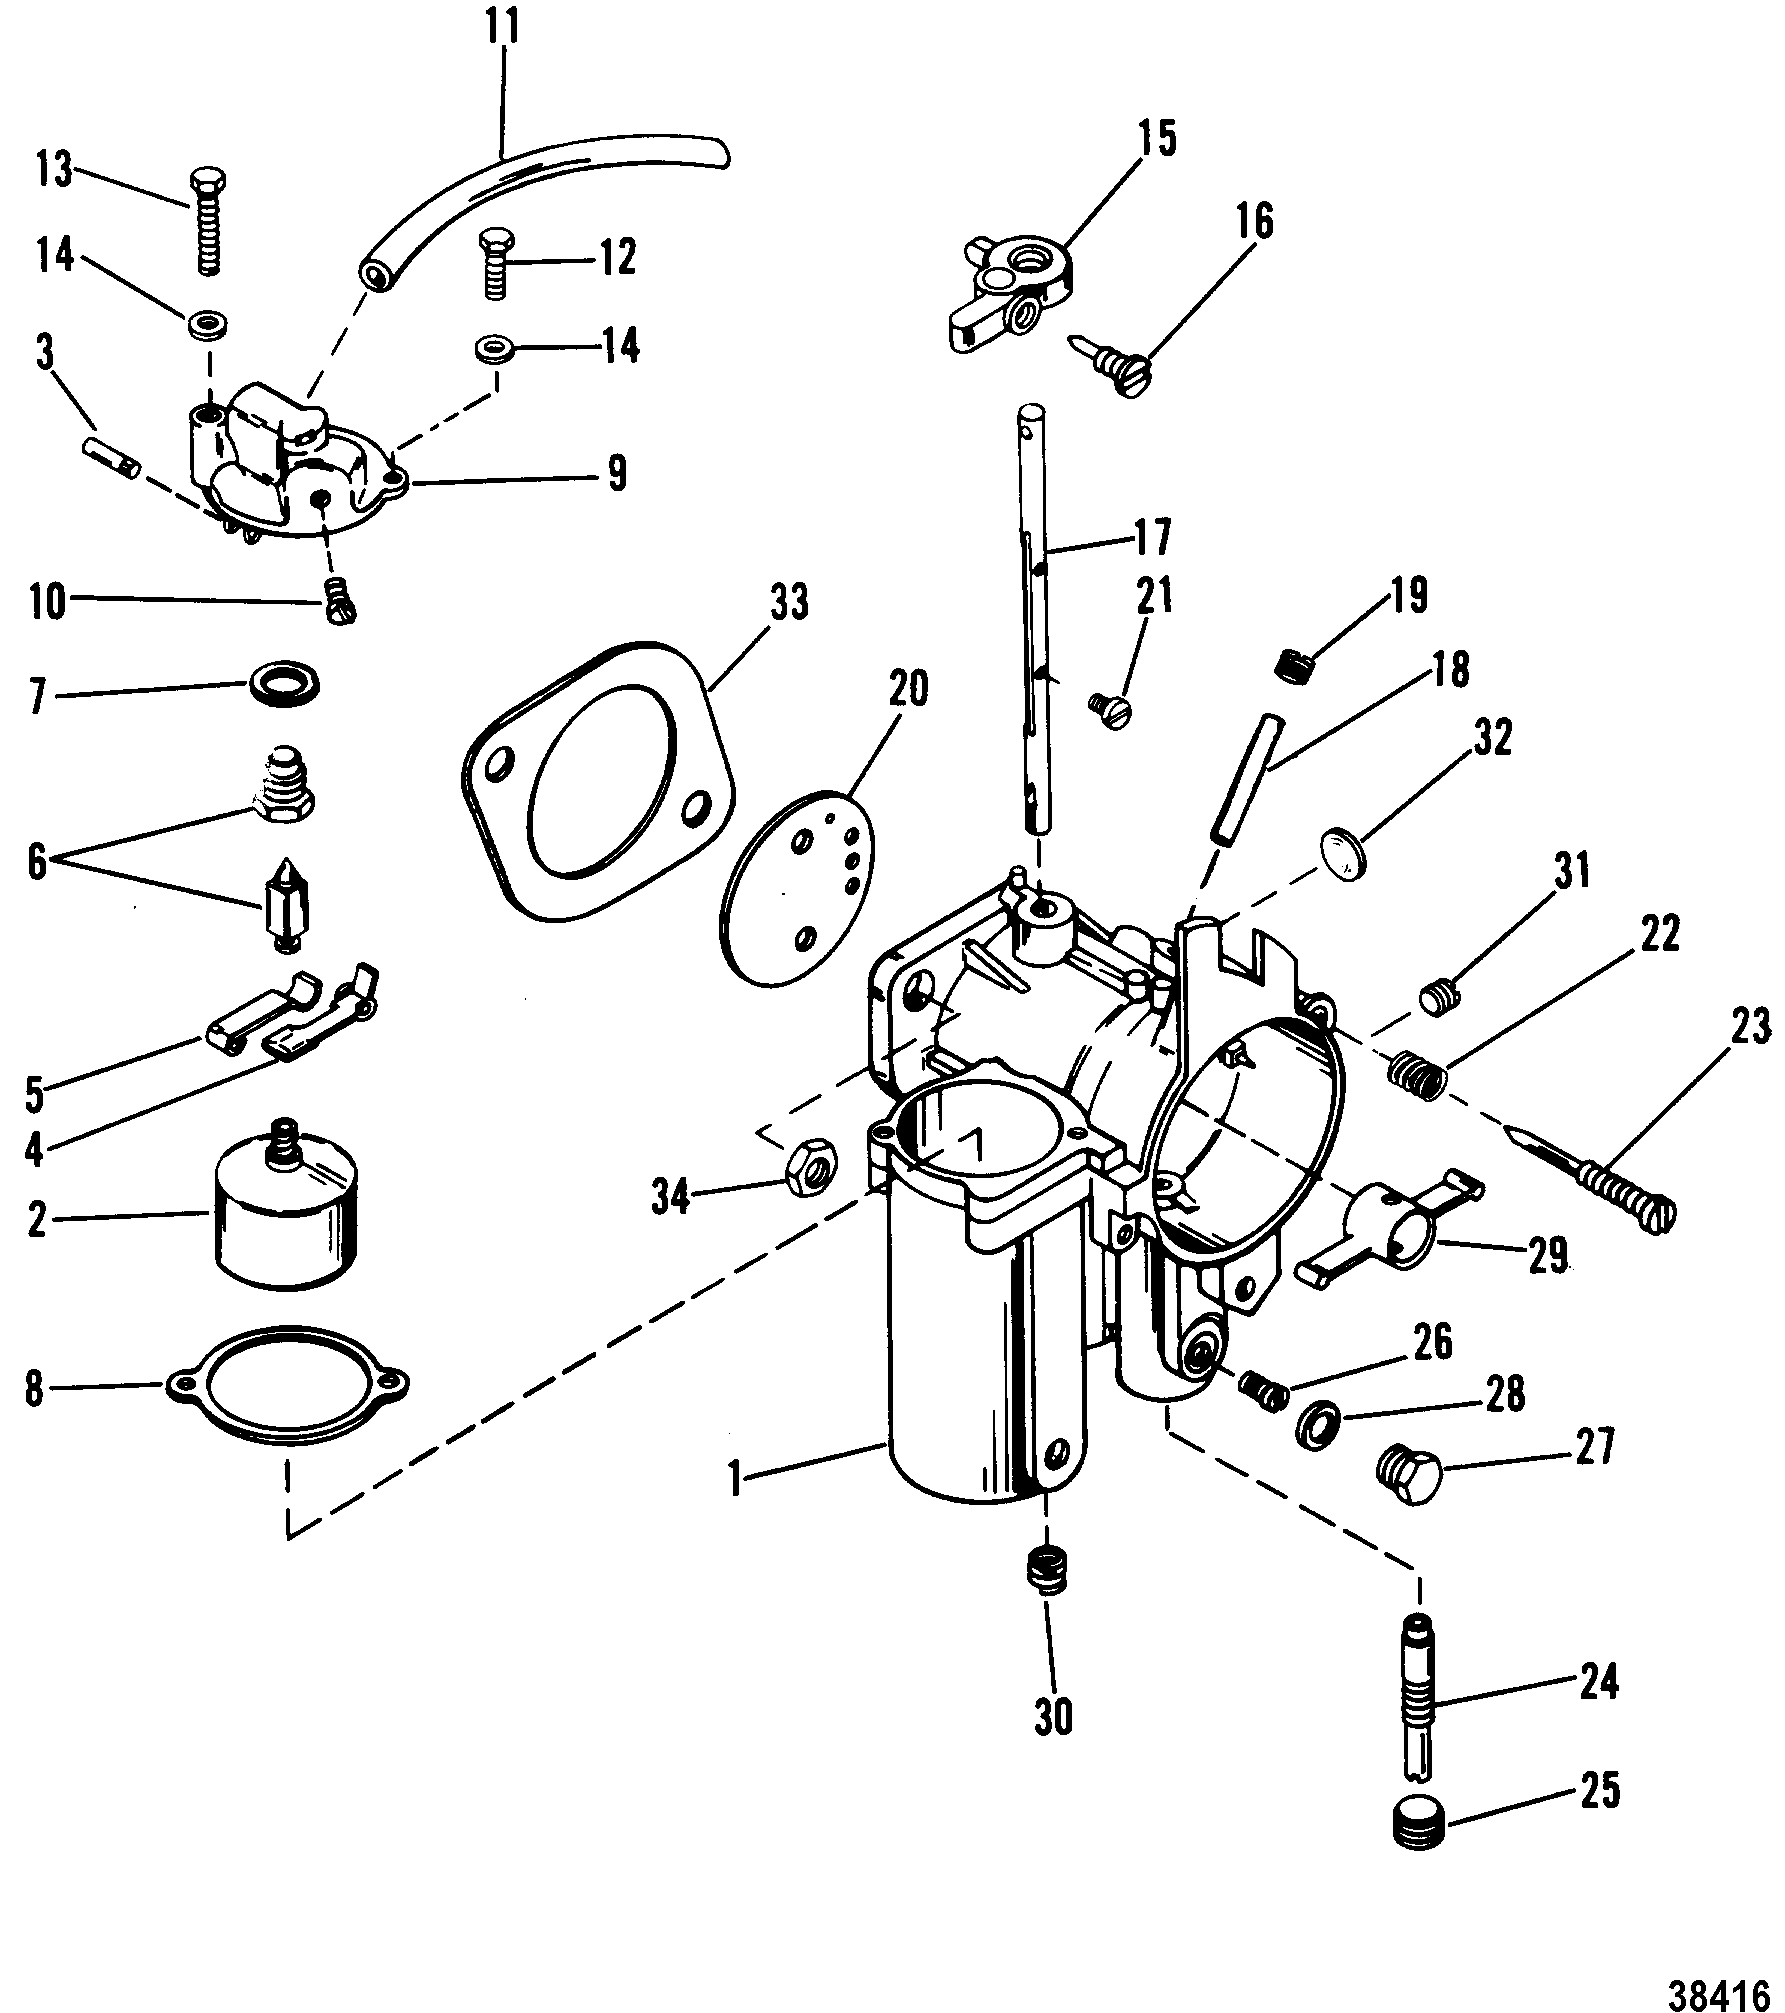 1978 35hp Evinrude Outboard Wiring Diagram Will Be 35 Hp Mercury Motor Carburetor For Mariner 90 115 H P Inline 50